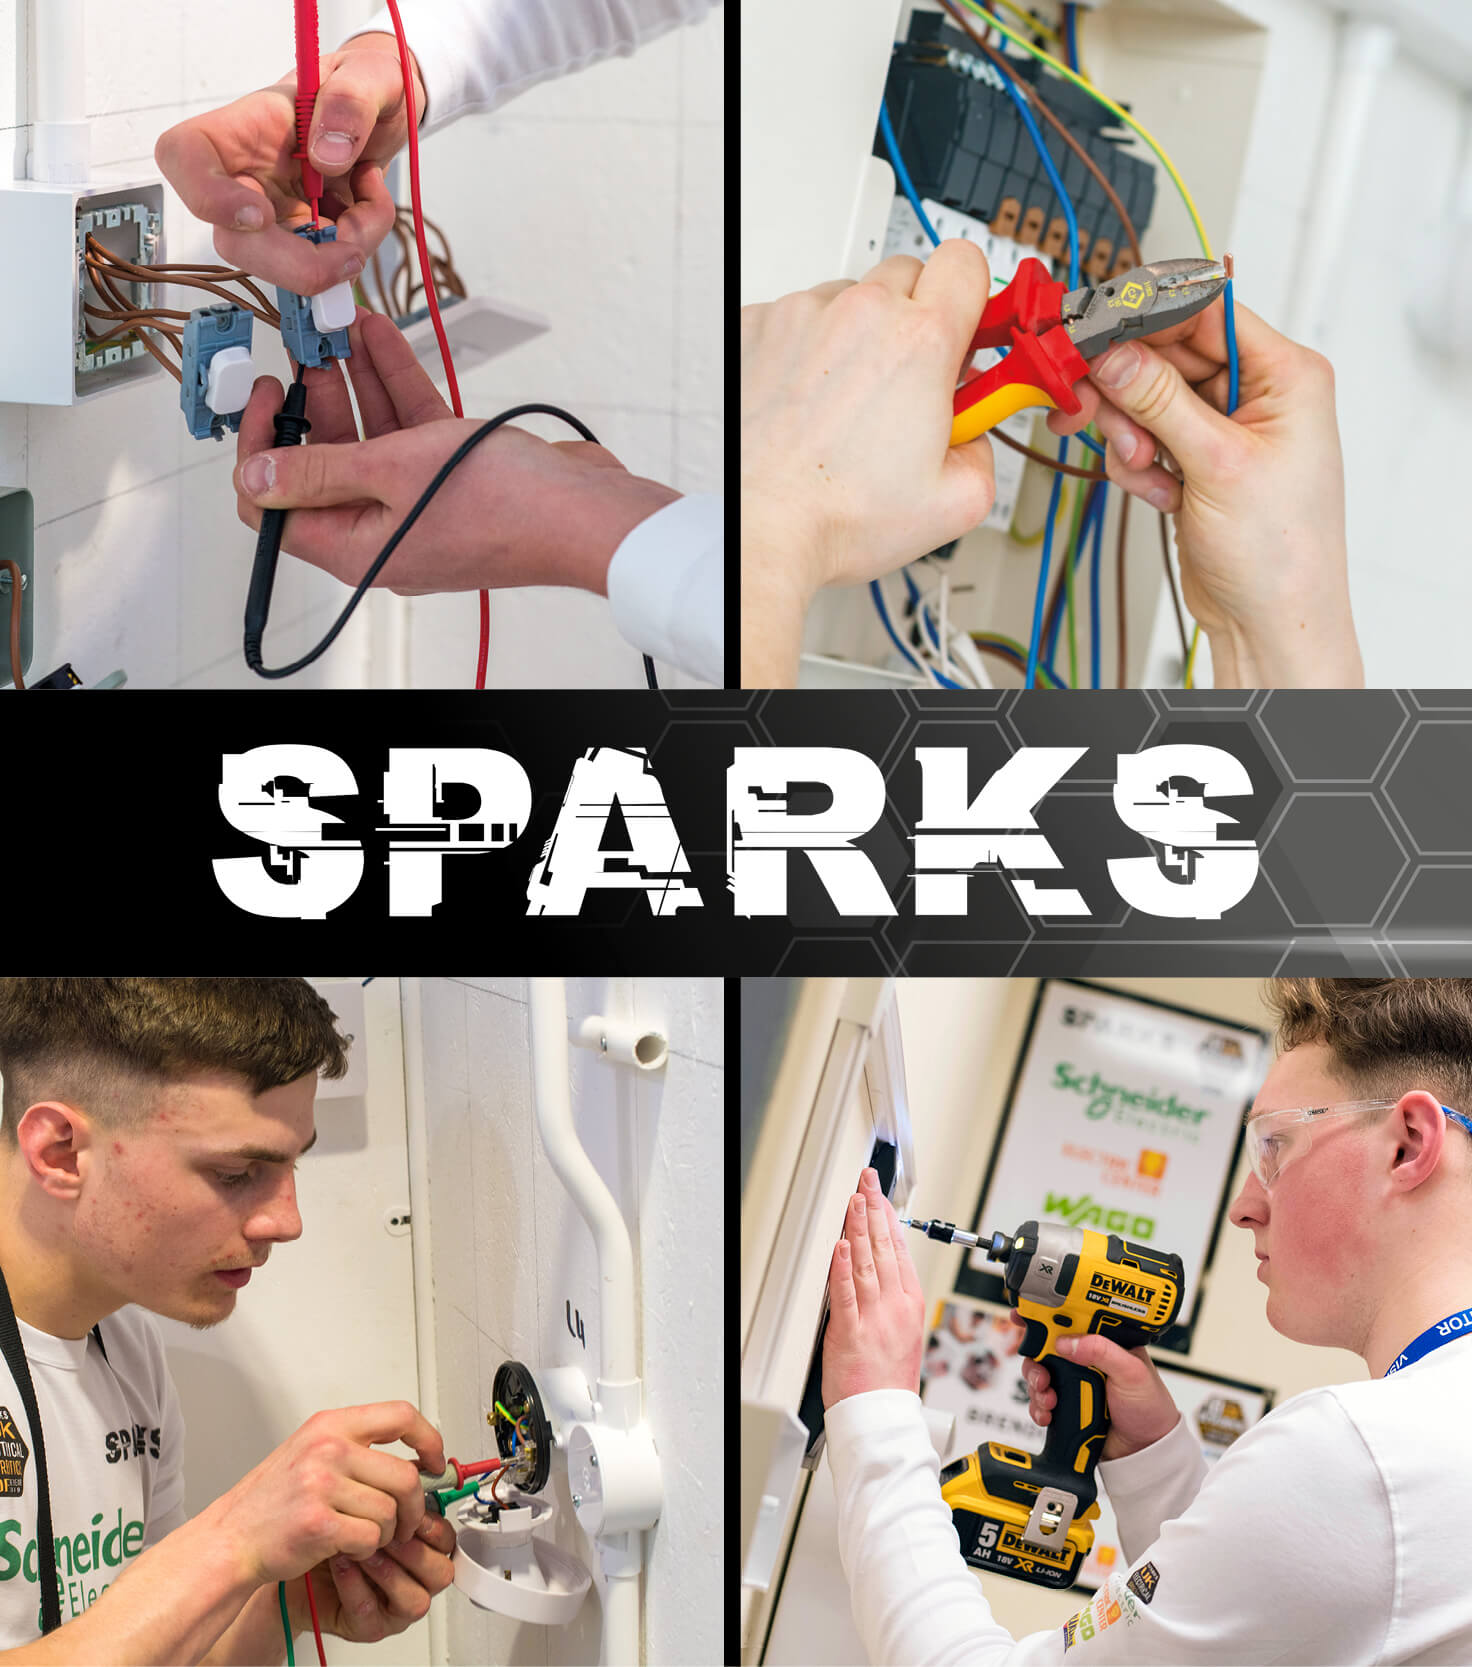 sng sparks